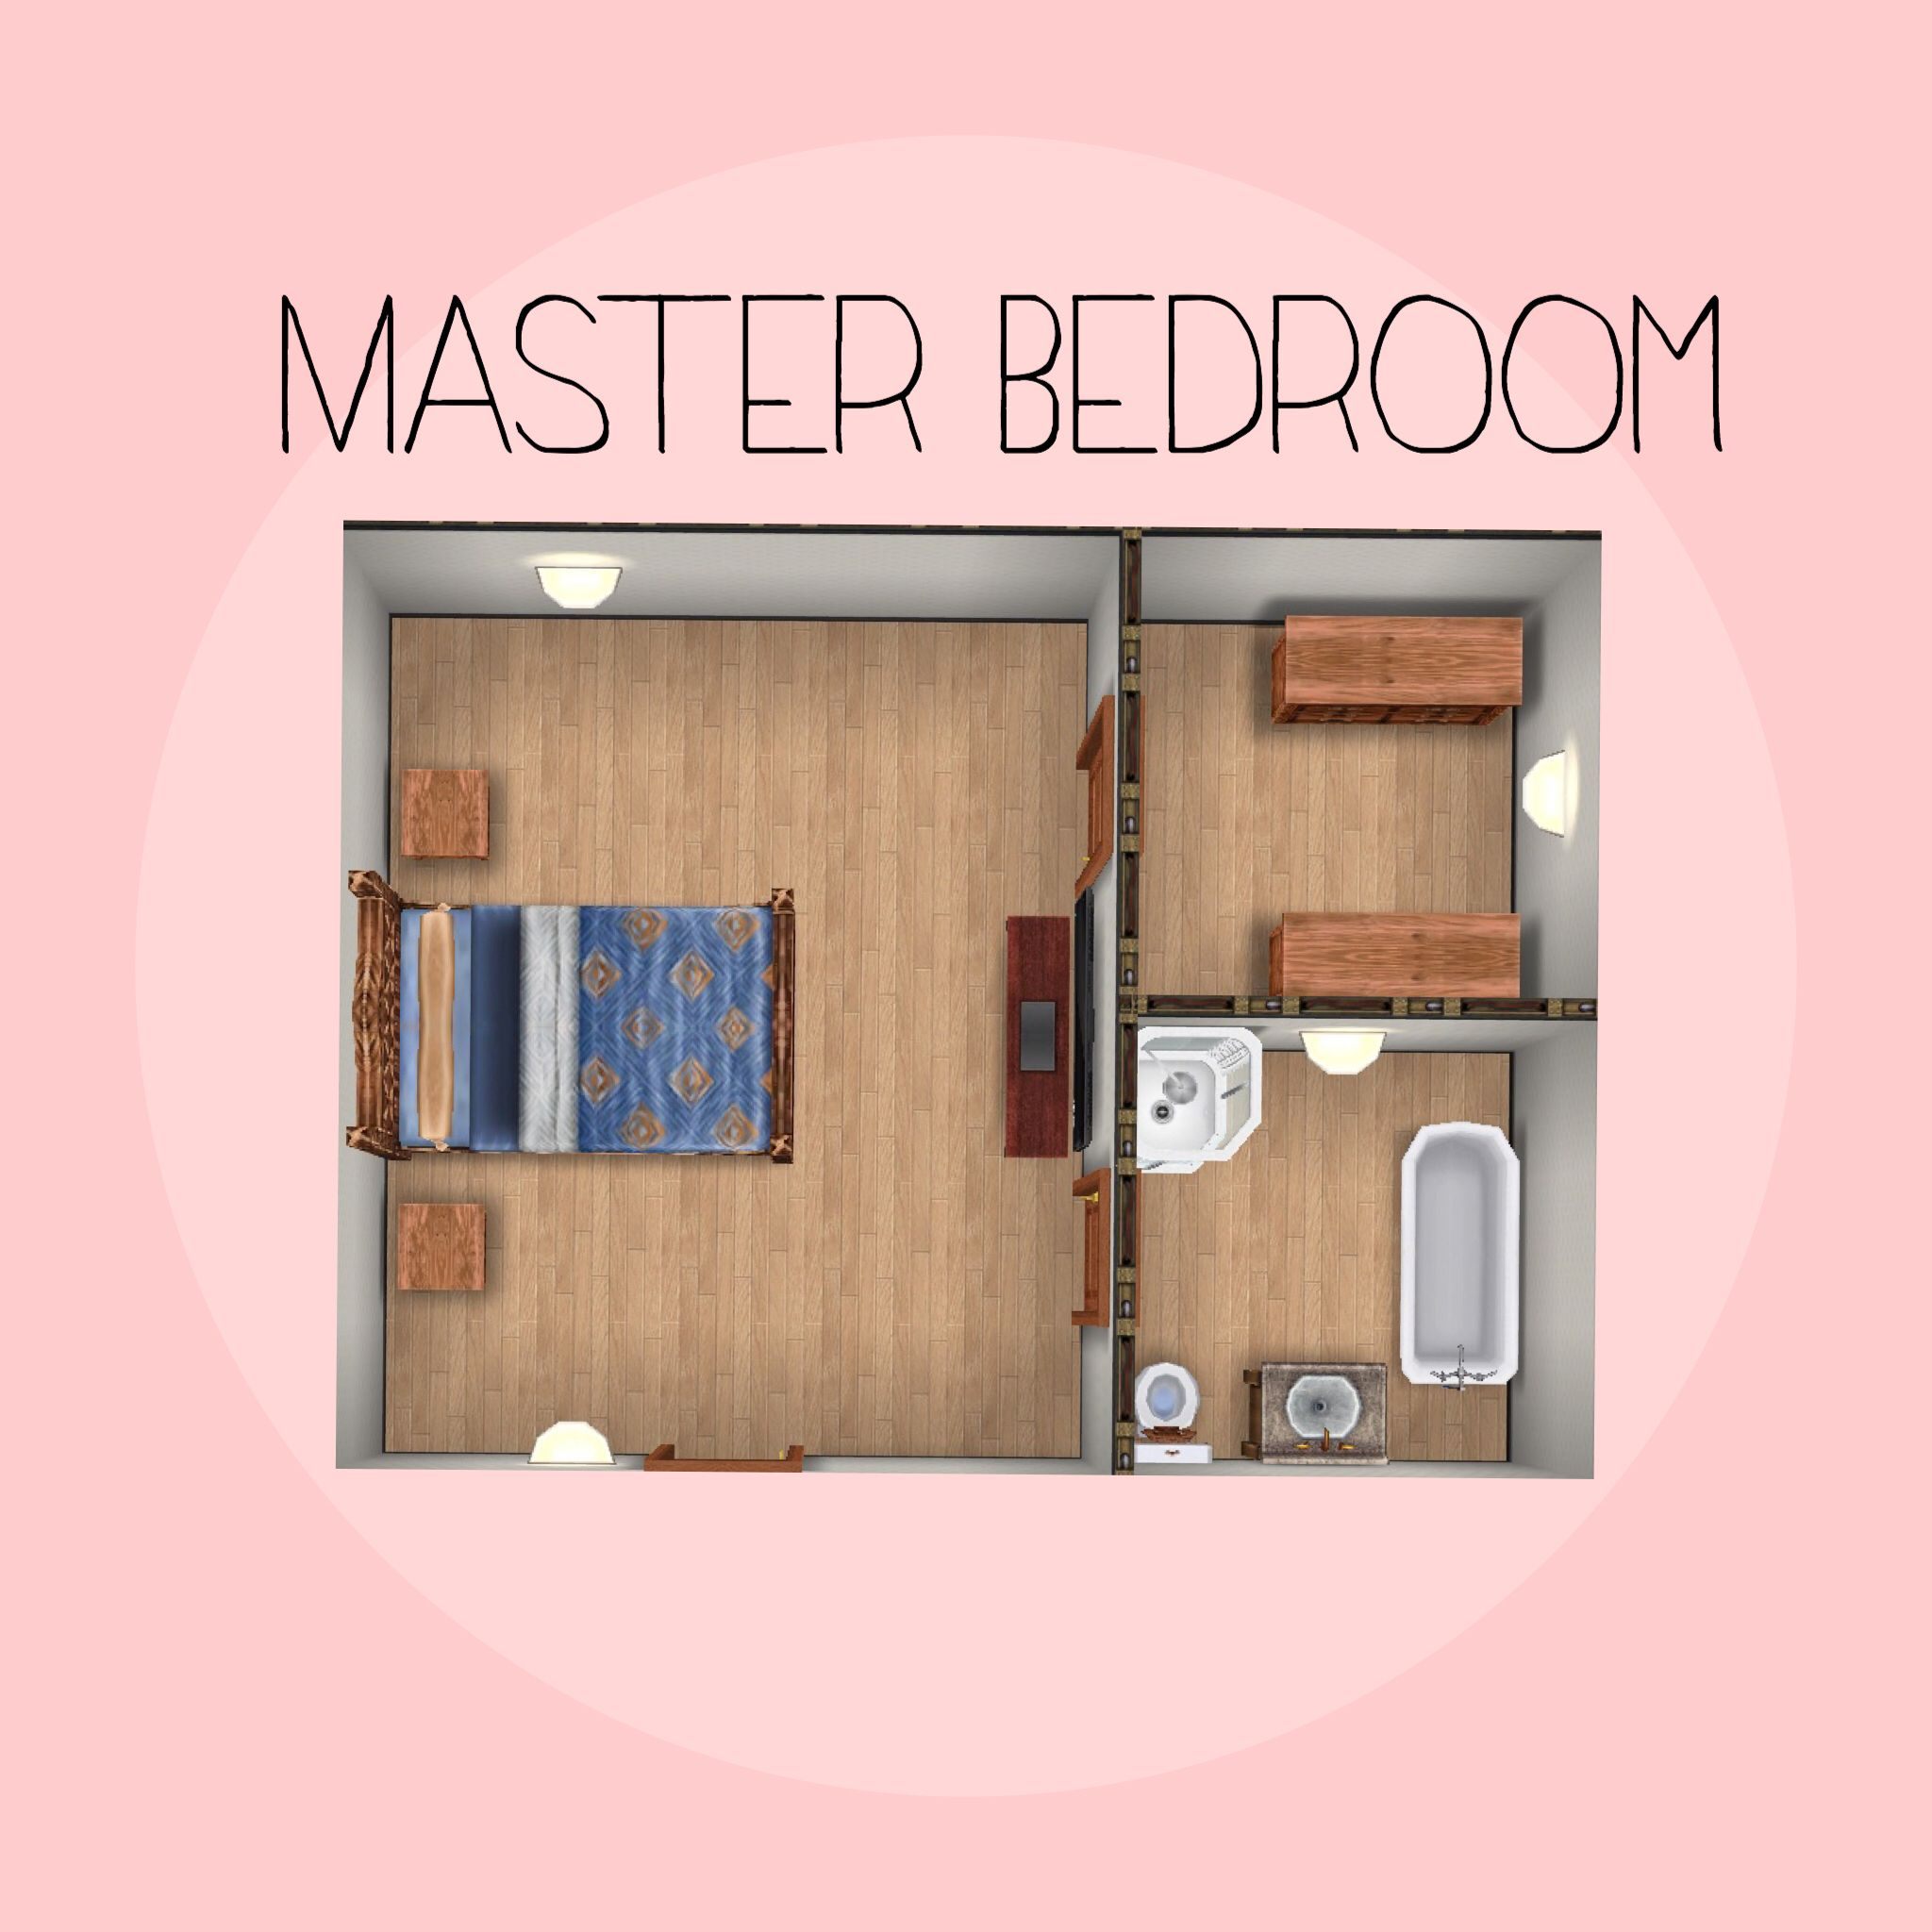 Sims Freeplay Bedroom- Master Bedroom | Sims freeplay ...